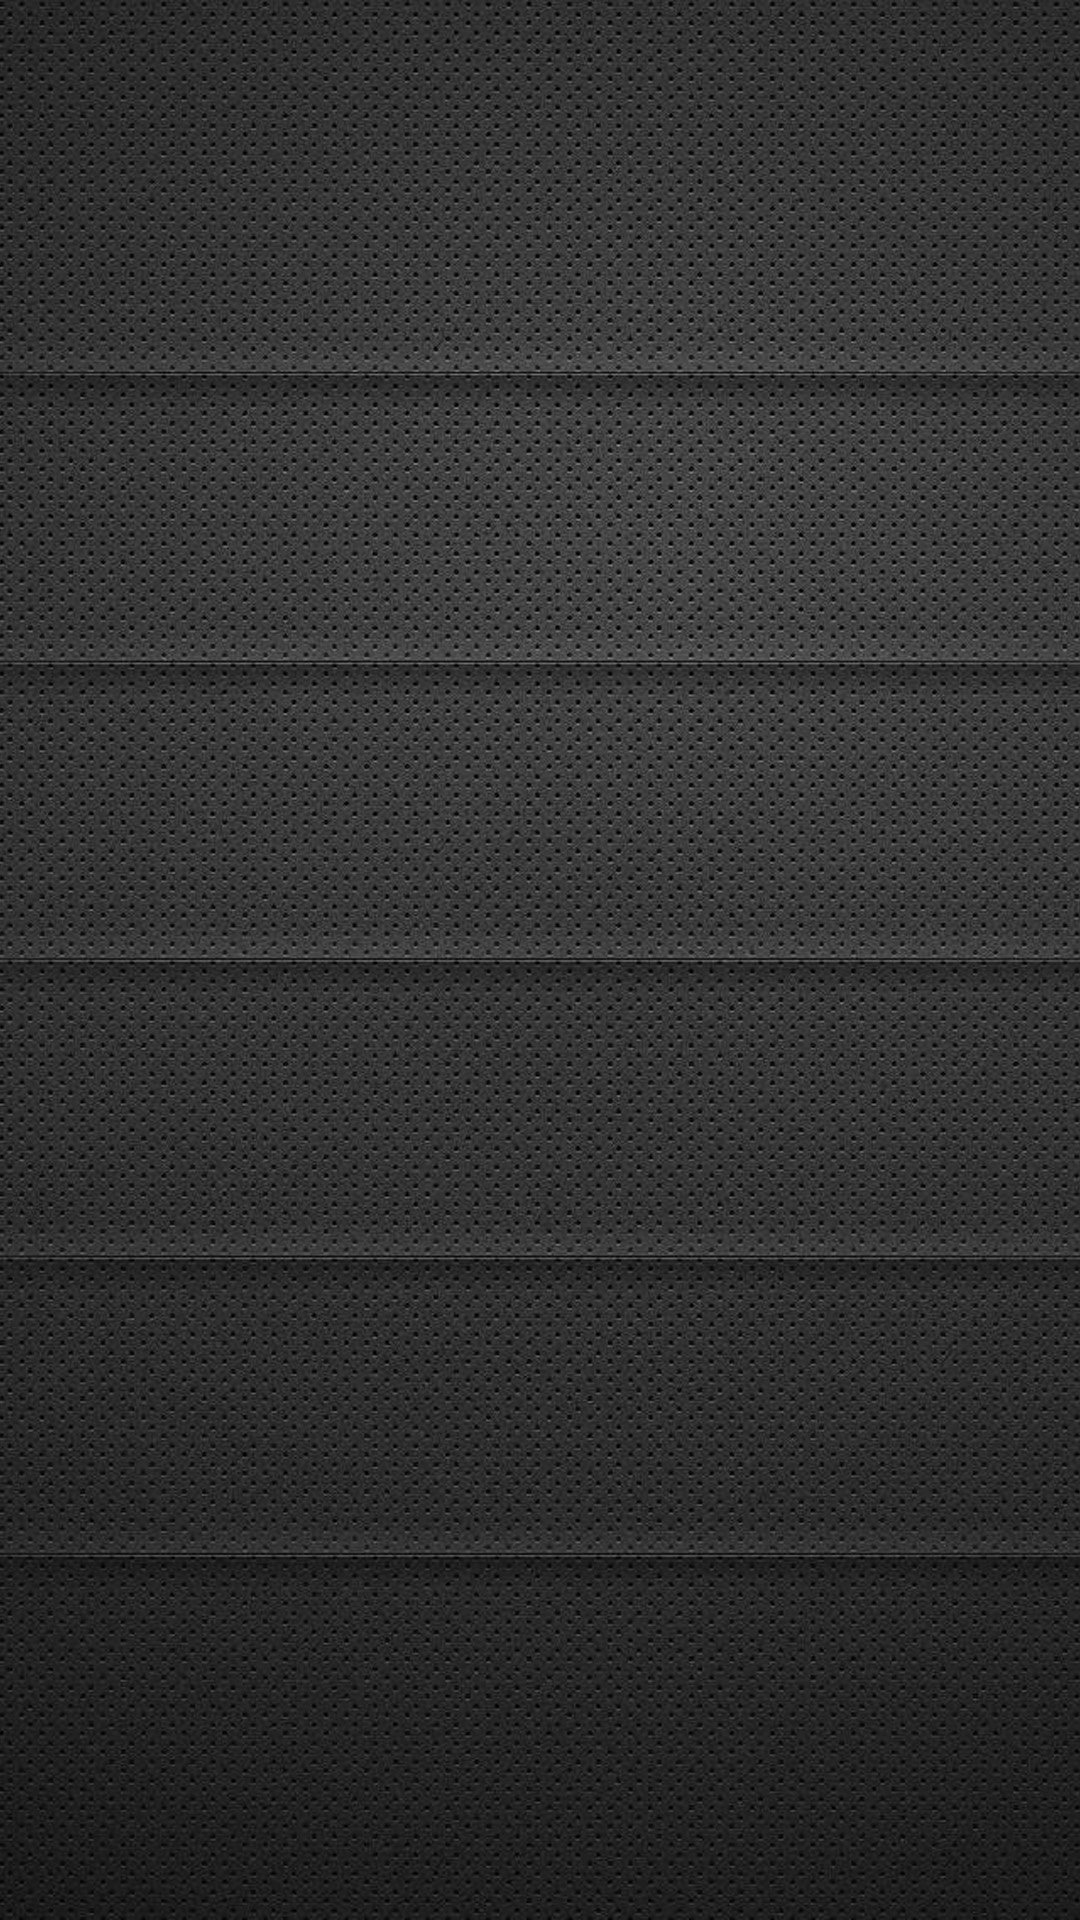 Shelf iPhone 6 Plus Wallpaper 08 iPhone 6 Plus Wallpapers HD 1080x1920